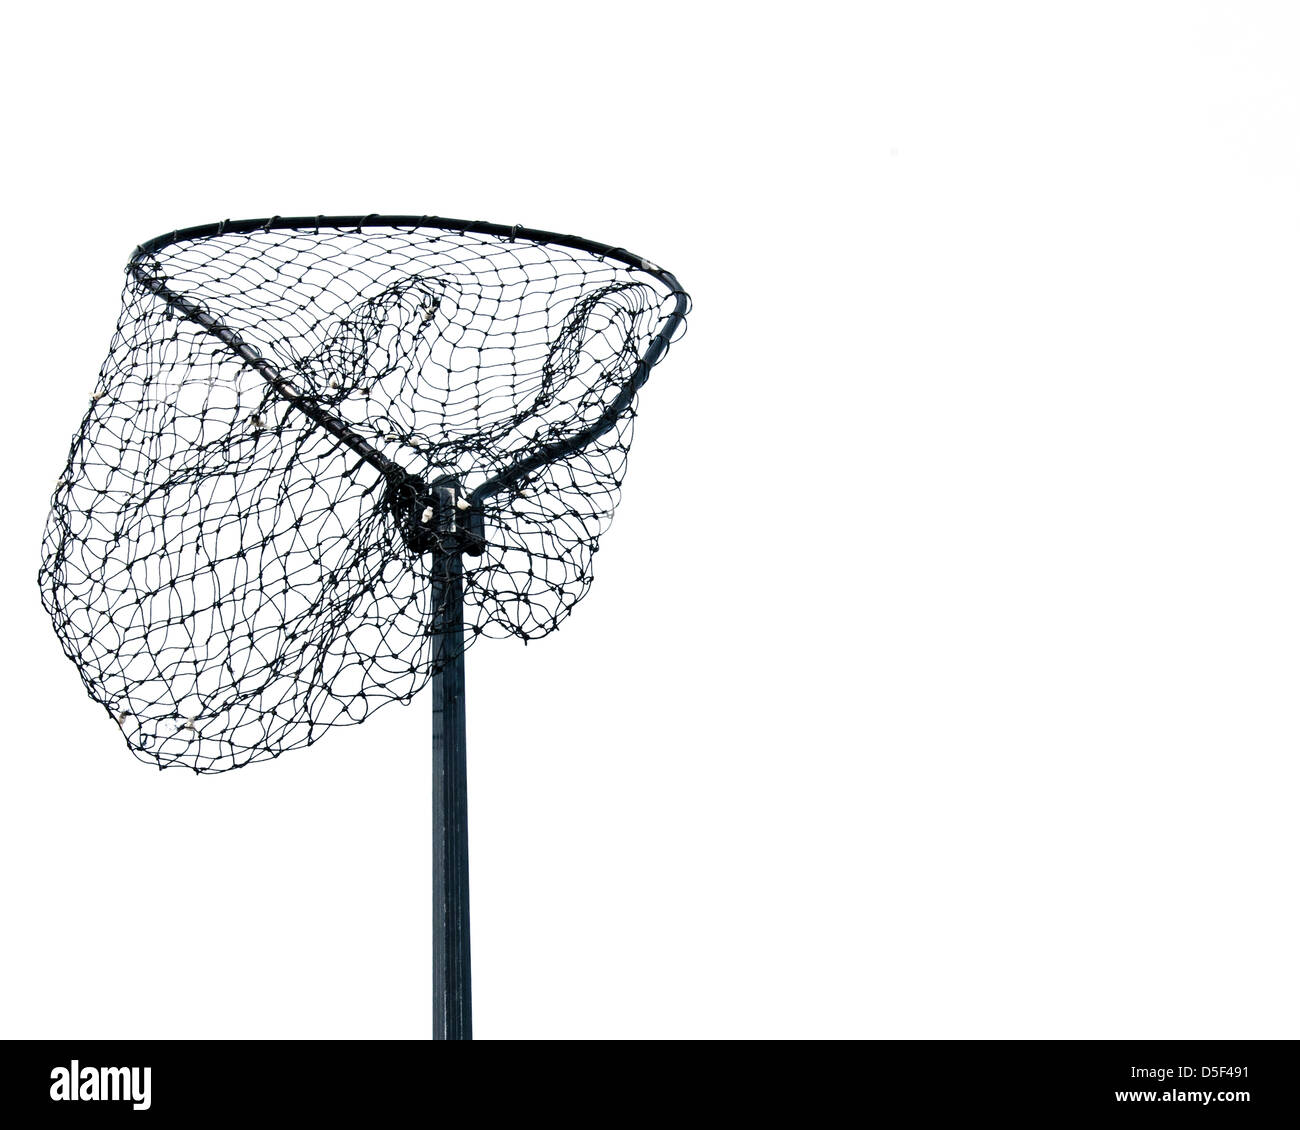 An empty fishing net against the white sky. - Stock Image